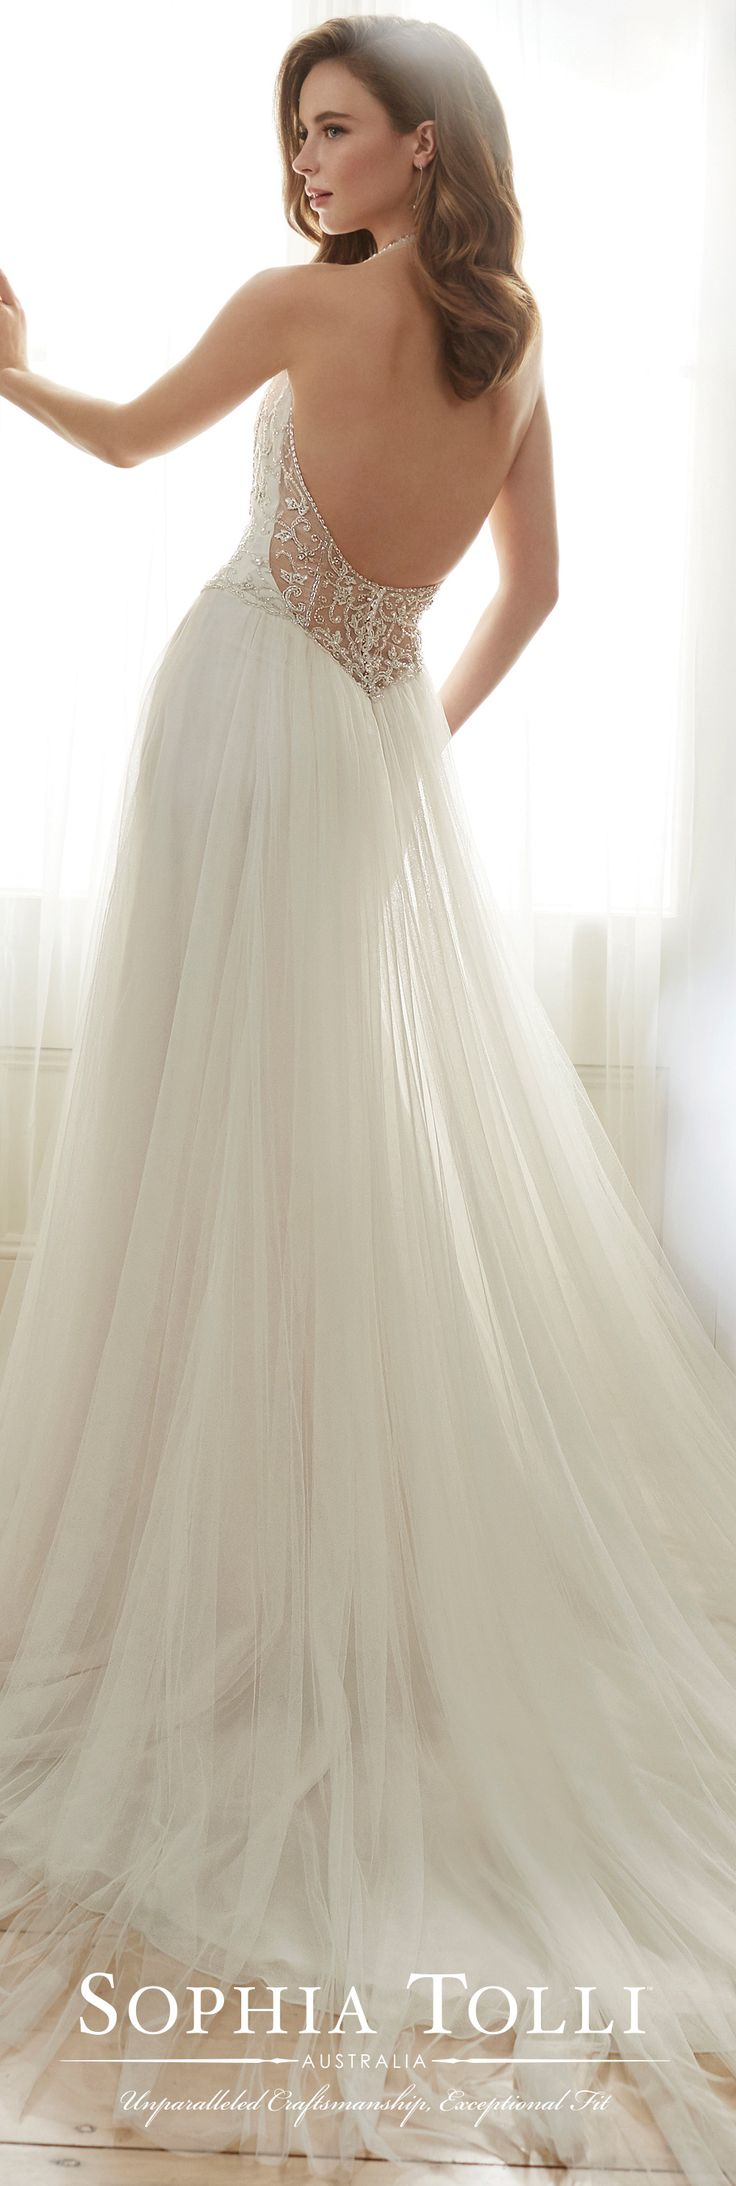 276 best Sophia Tolli Wedding Dresses images on Pinterest | Short ...